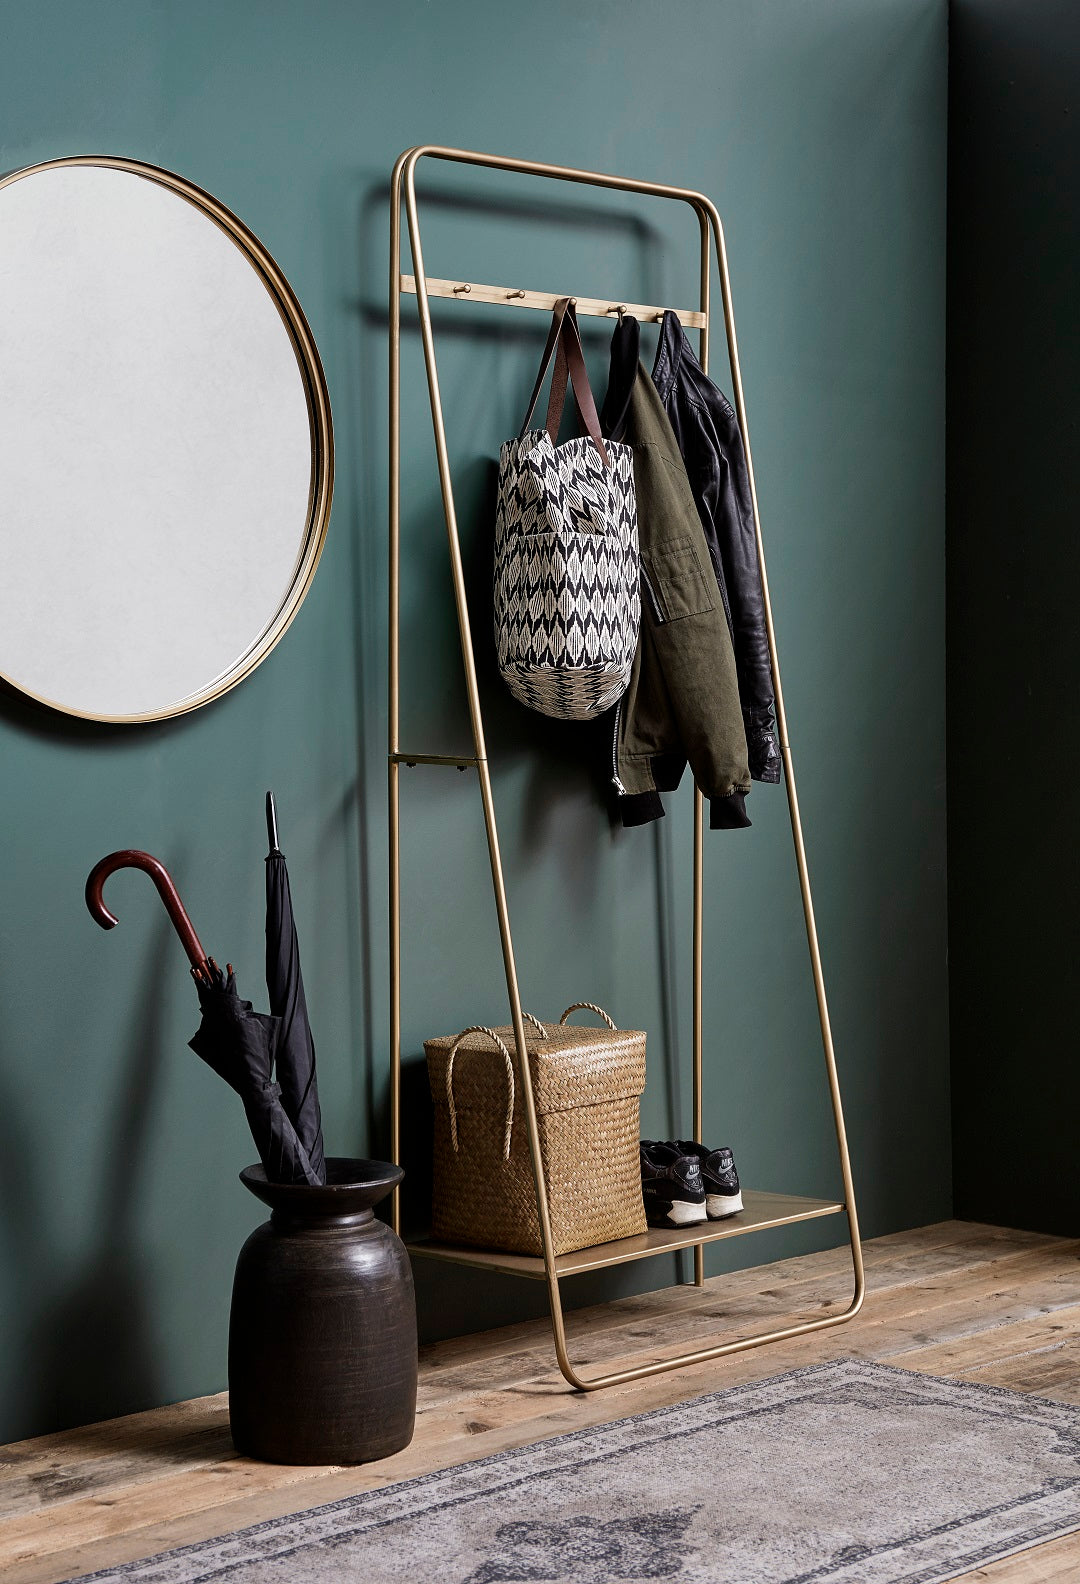 INTERIORS INSPIRATION: fIVE WAYS TO DECORATE WITH GREEN